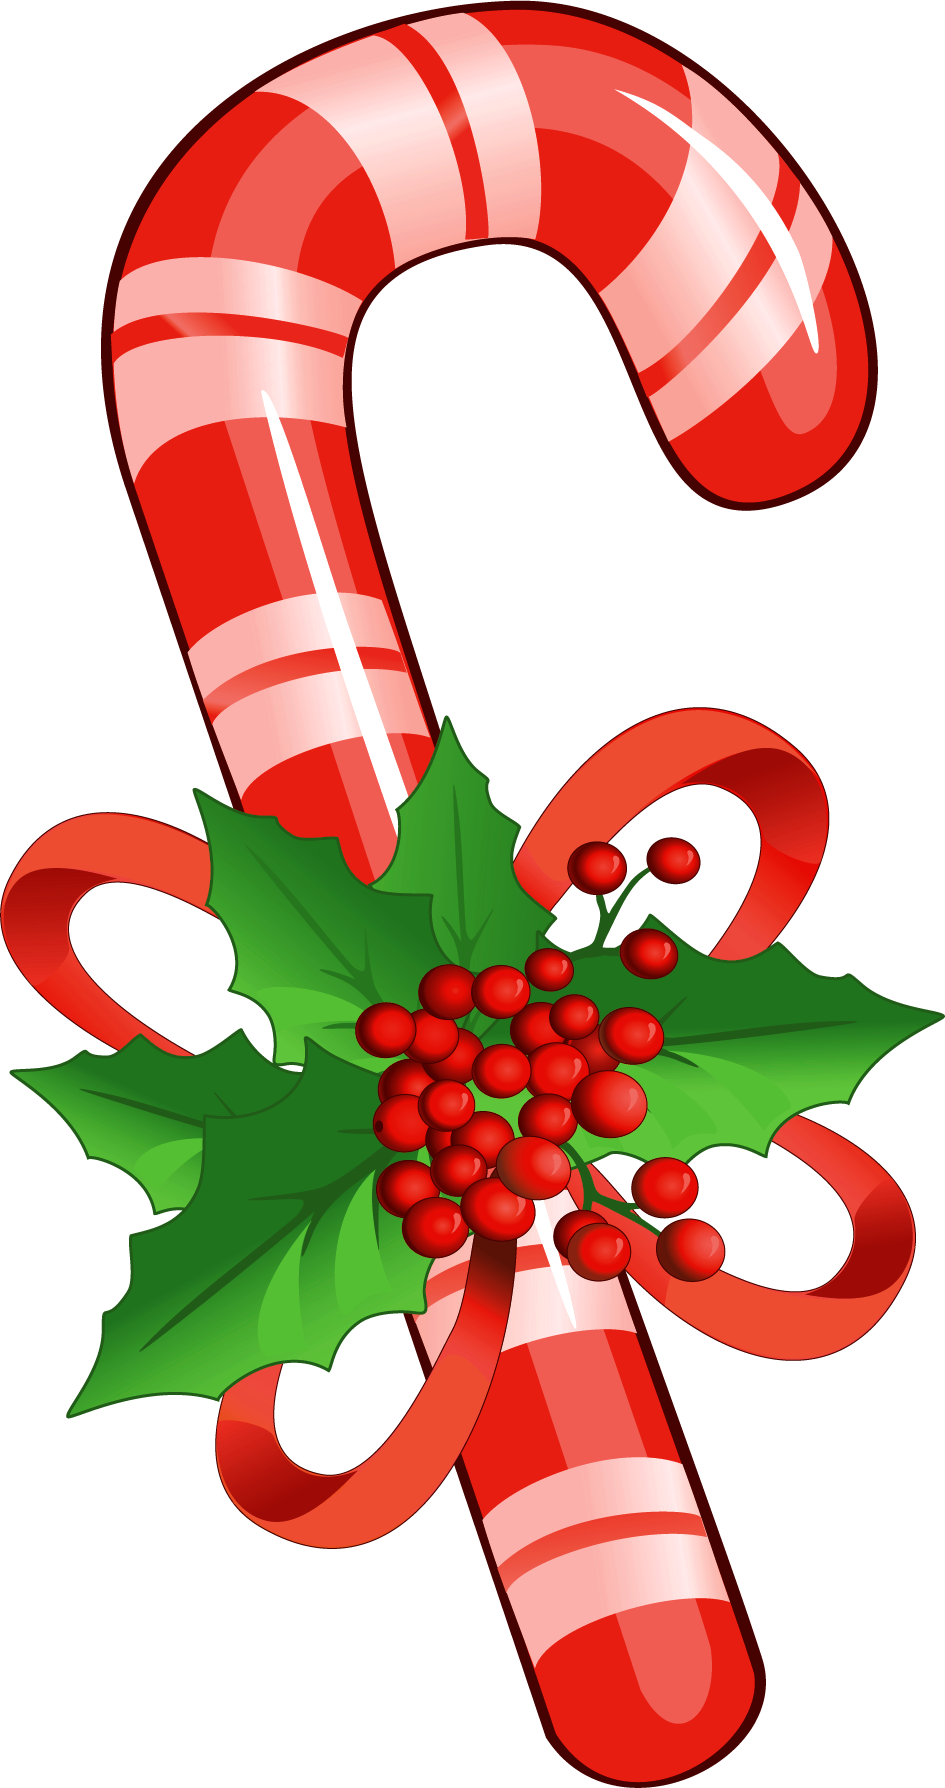 Christmas cane clipart banner freeuse download Candy Cane with Mistletoe PNG Clipart | Gallery Yopriceville - High ... banner freeuse download